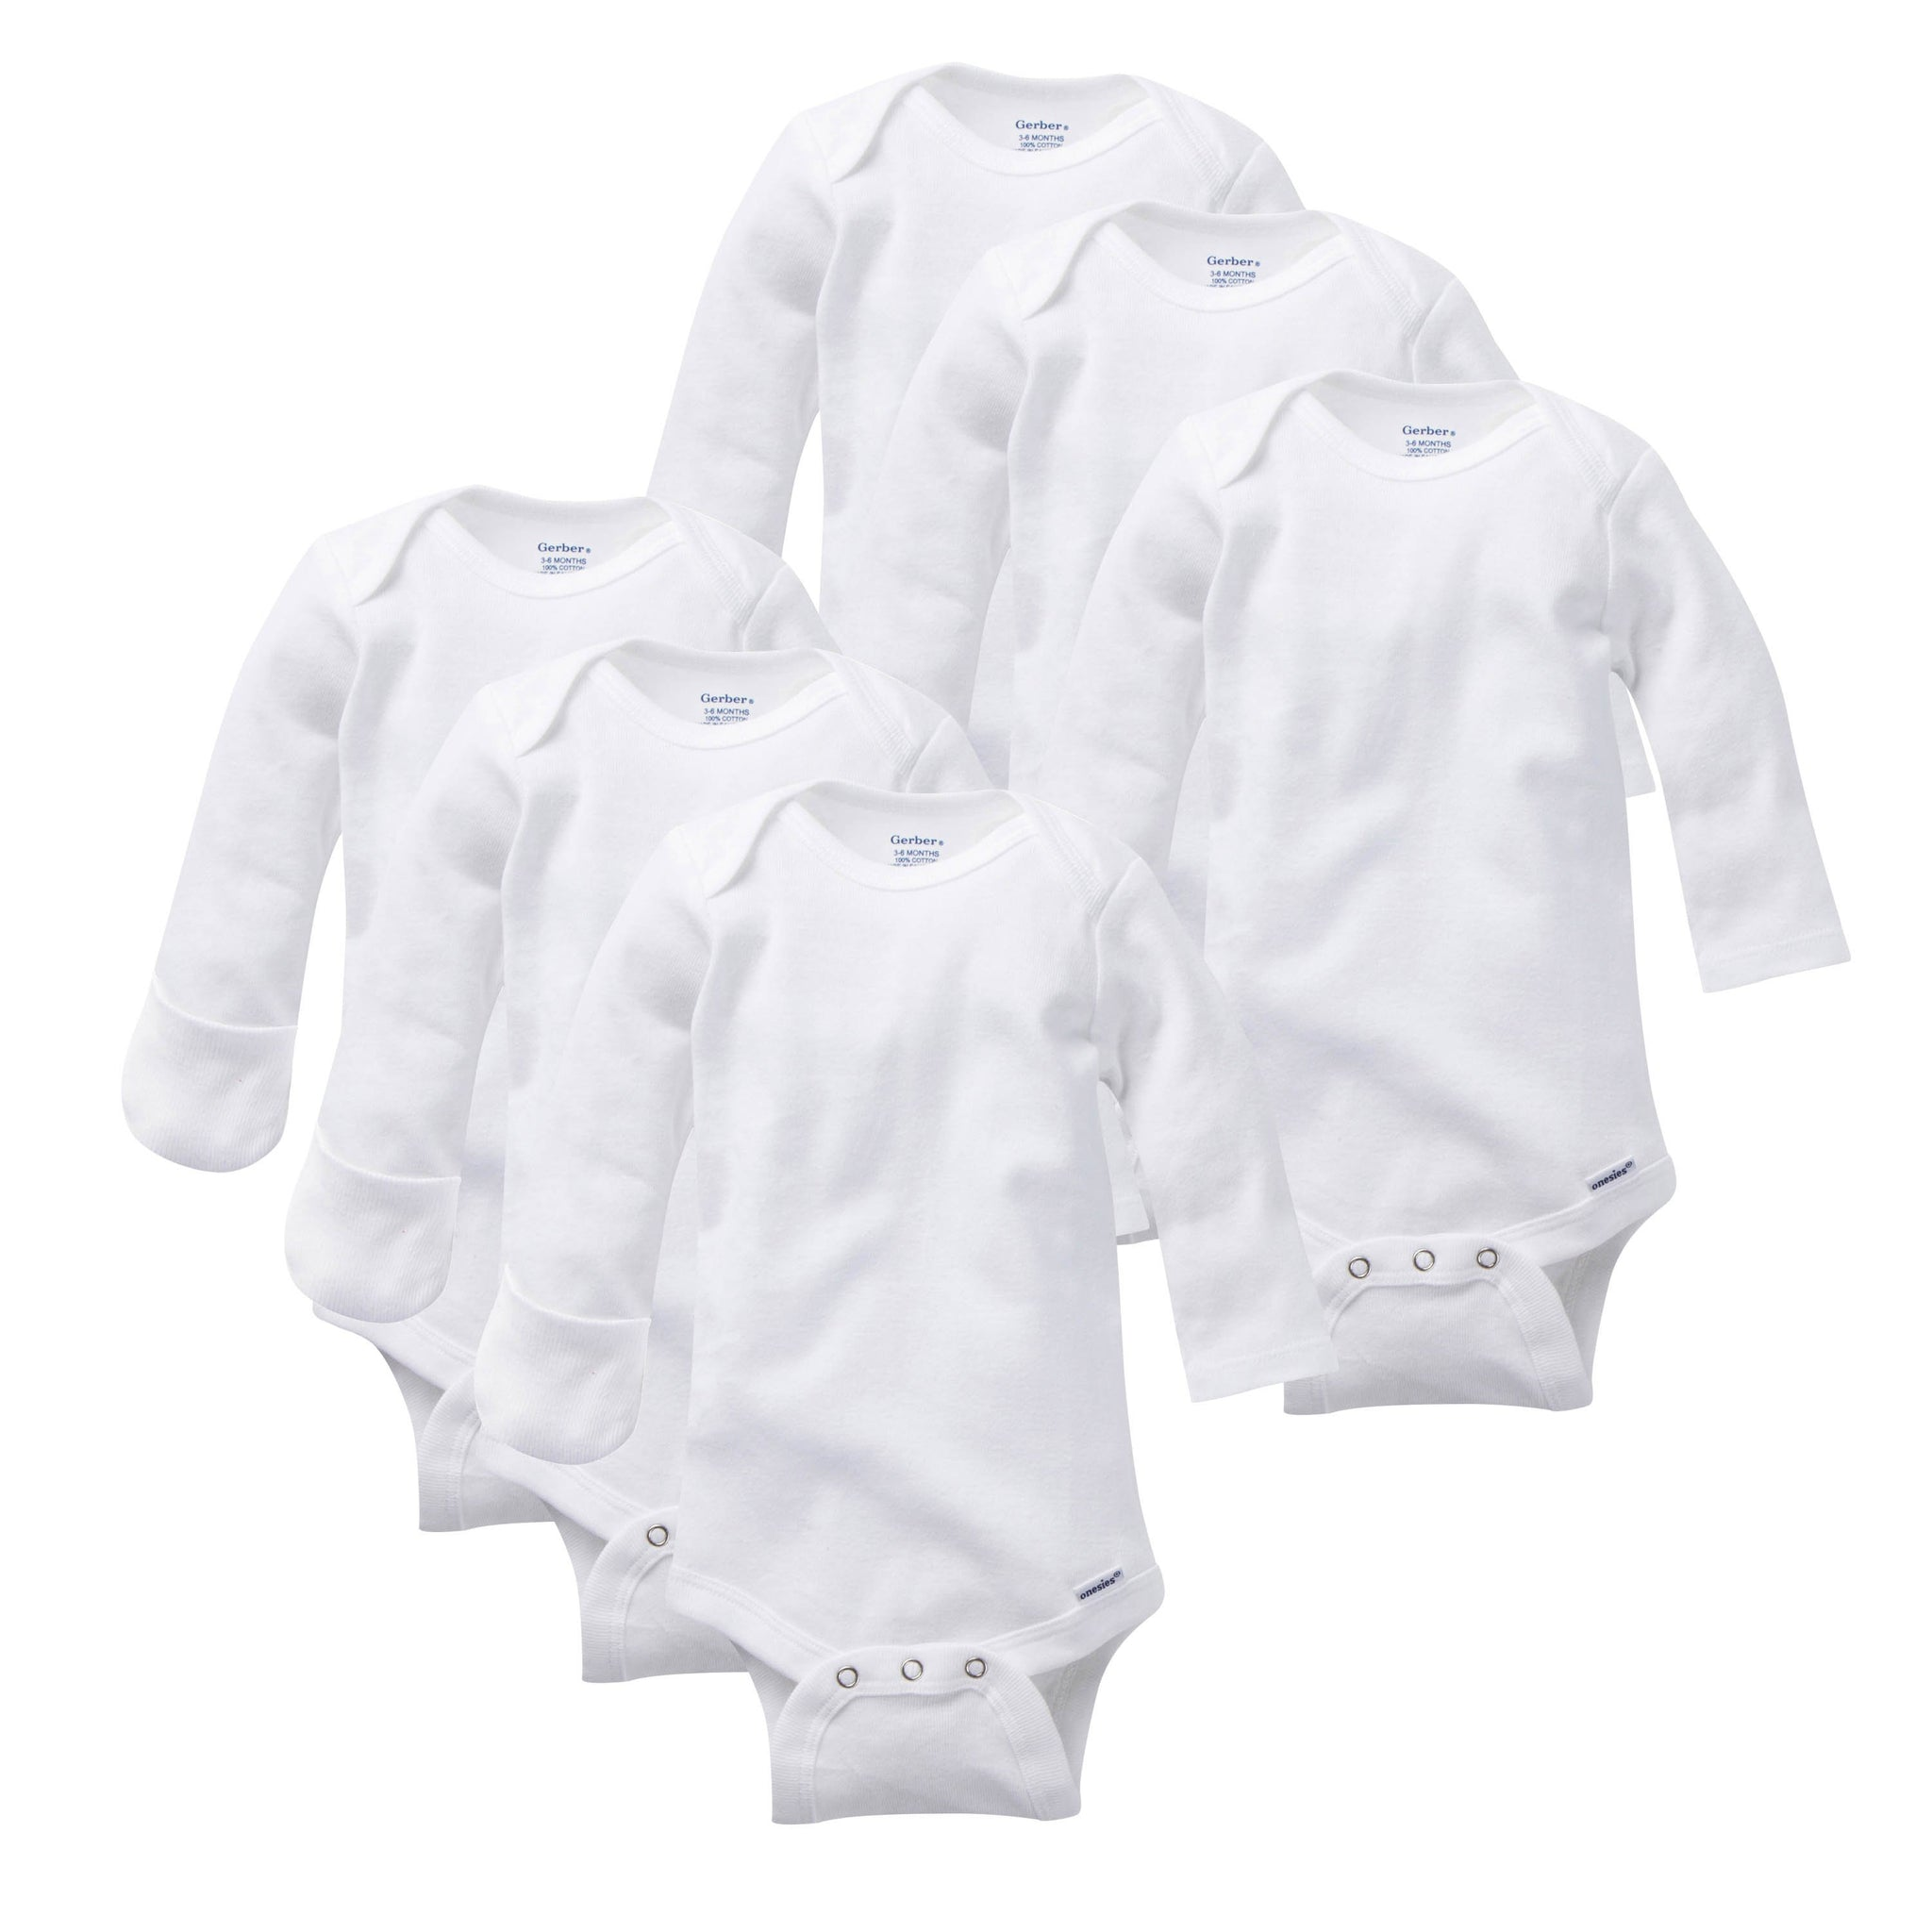 6-Pack White Long-Sleeve Mitten-Cuff Onesies Bodysuits-Gerber Childrenswear